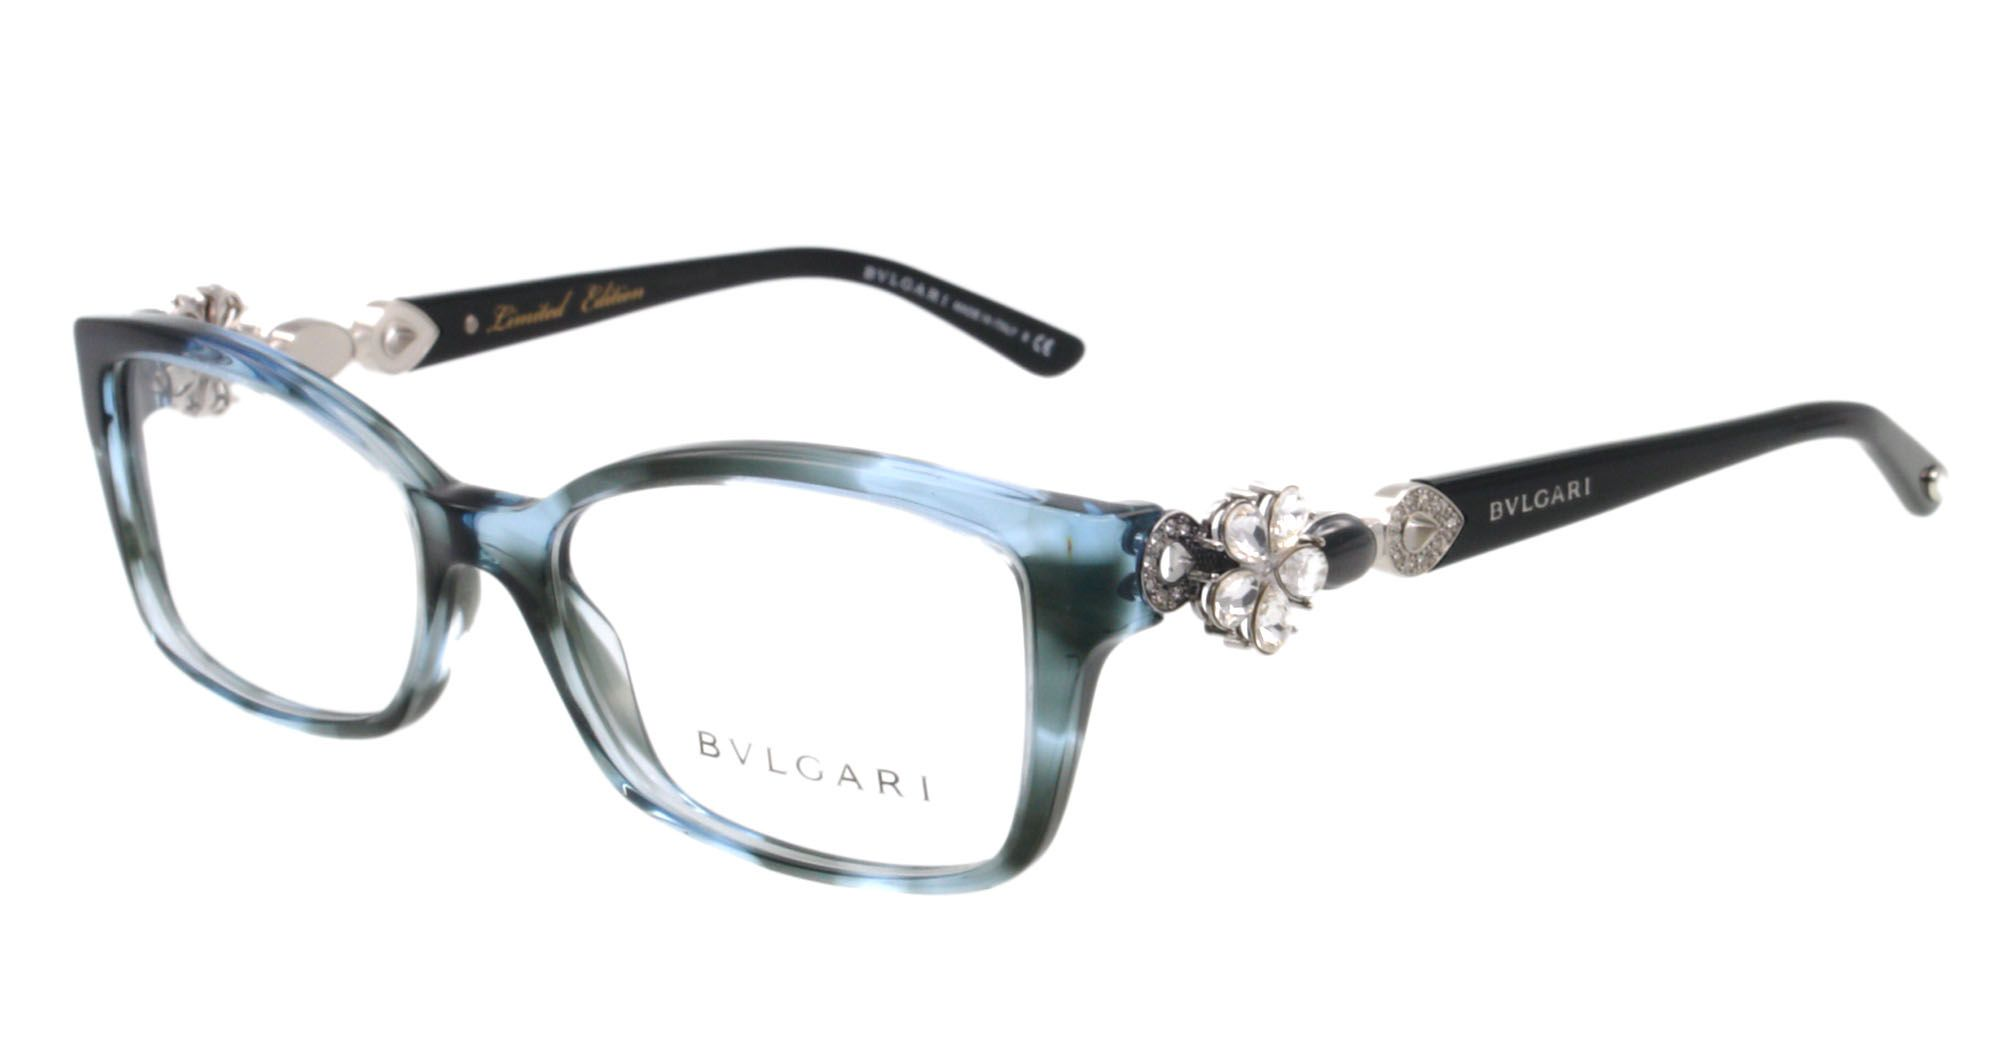 3d9596d74c Details about NEW Bvlgari Eyeglasses BV 4058B BLACK 5220 BV4058 53MM ...